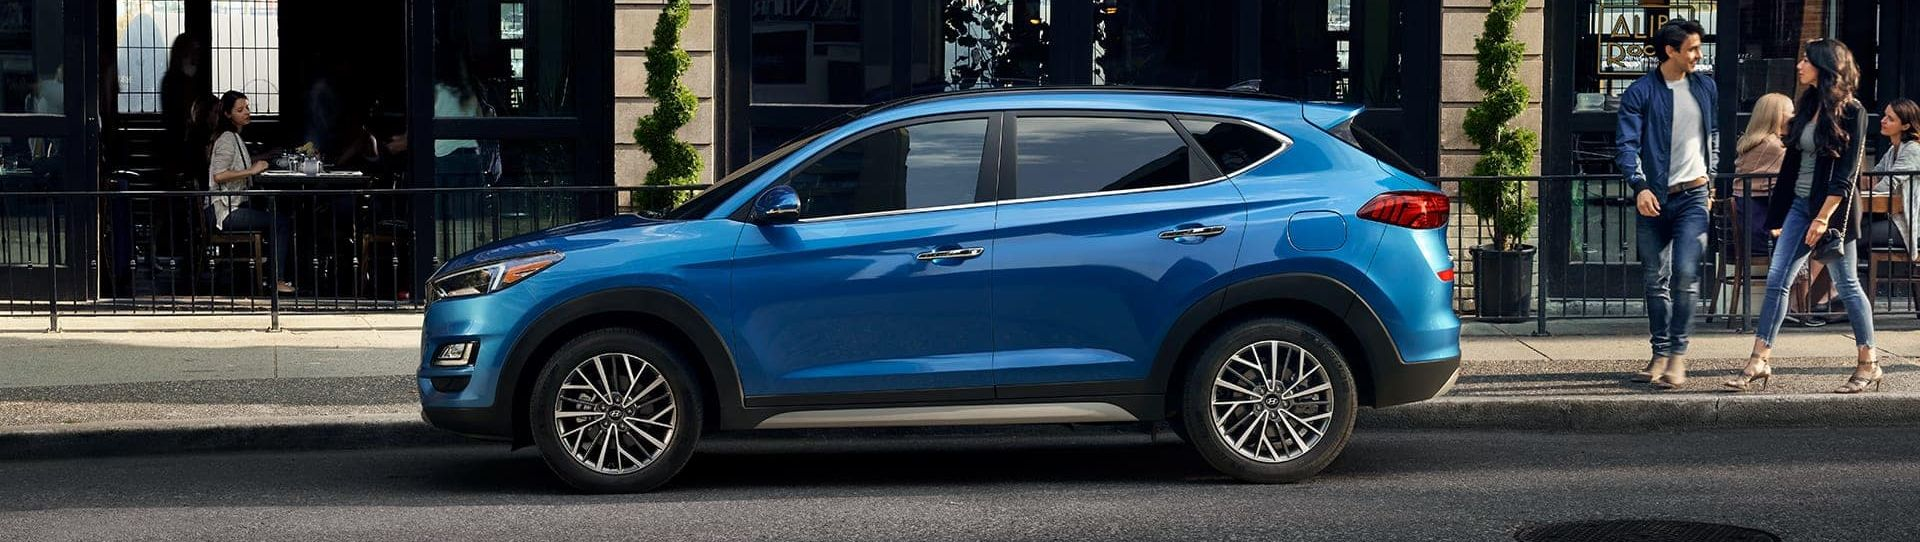 2019 Hyundai Tucson Leasing near Washington DC